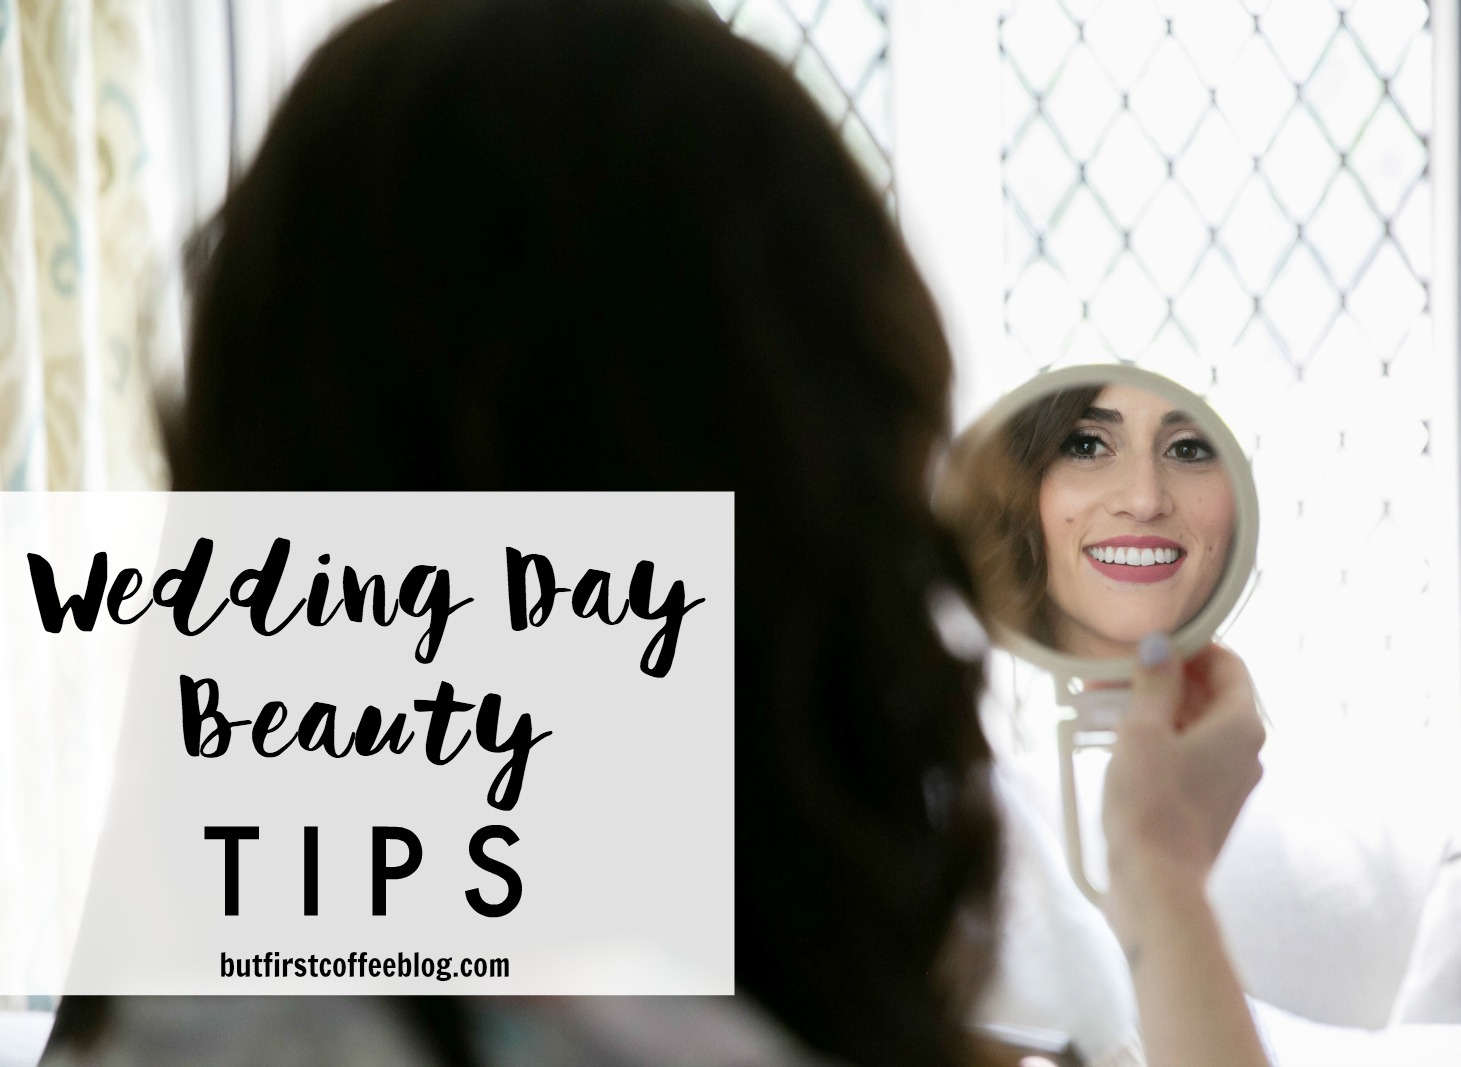 wedding day beauty tips - Real bride: brides share their wedding day beauty tips